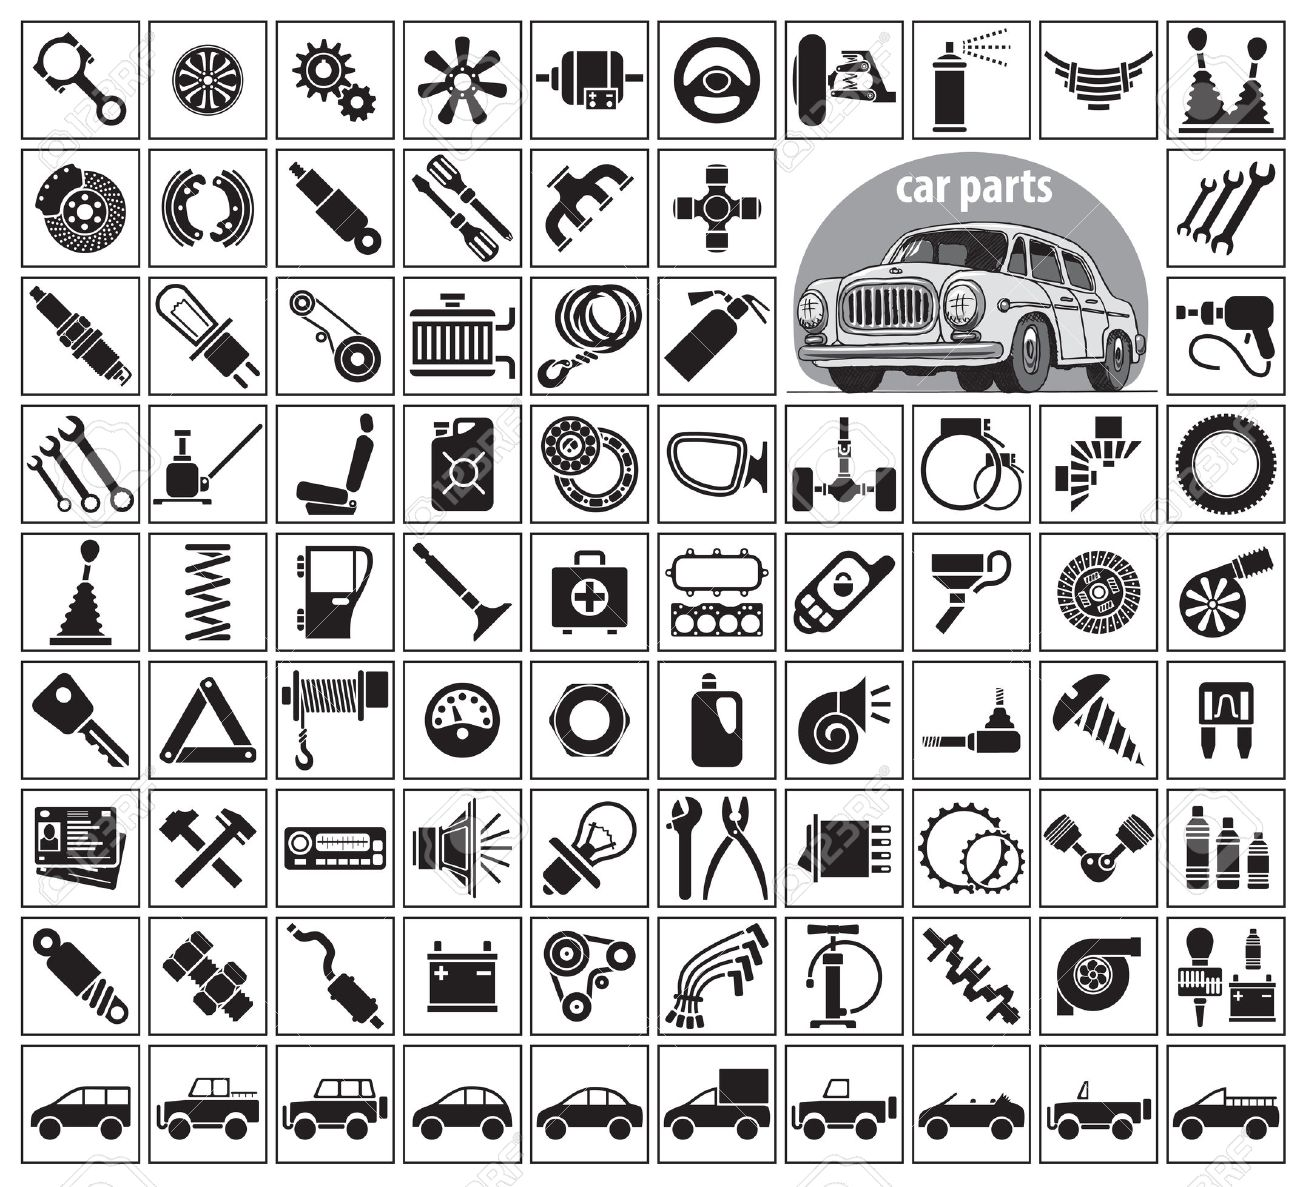 Car Parts, Tools And Accessories. Eighty Four Icons And One Image ...